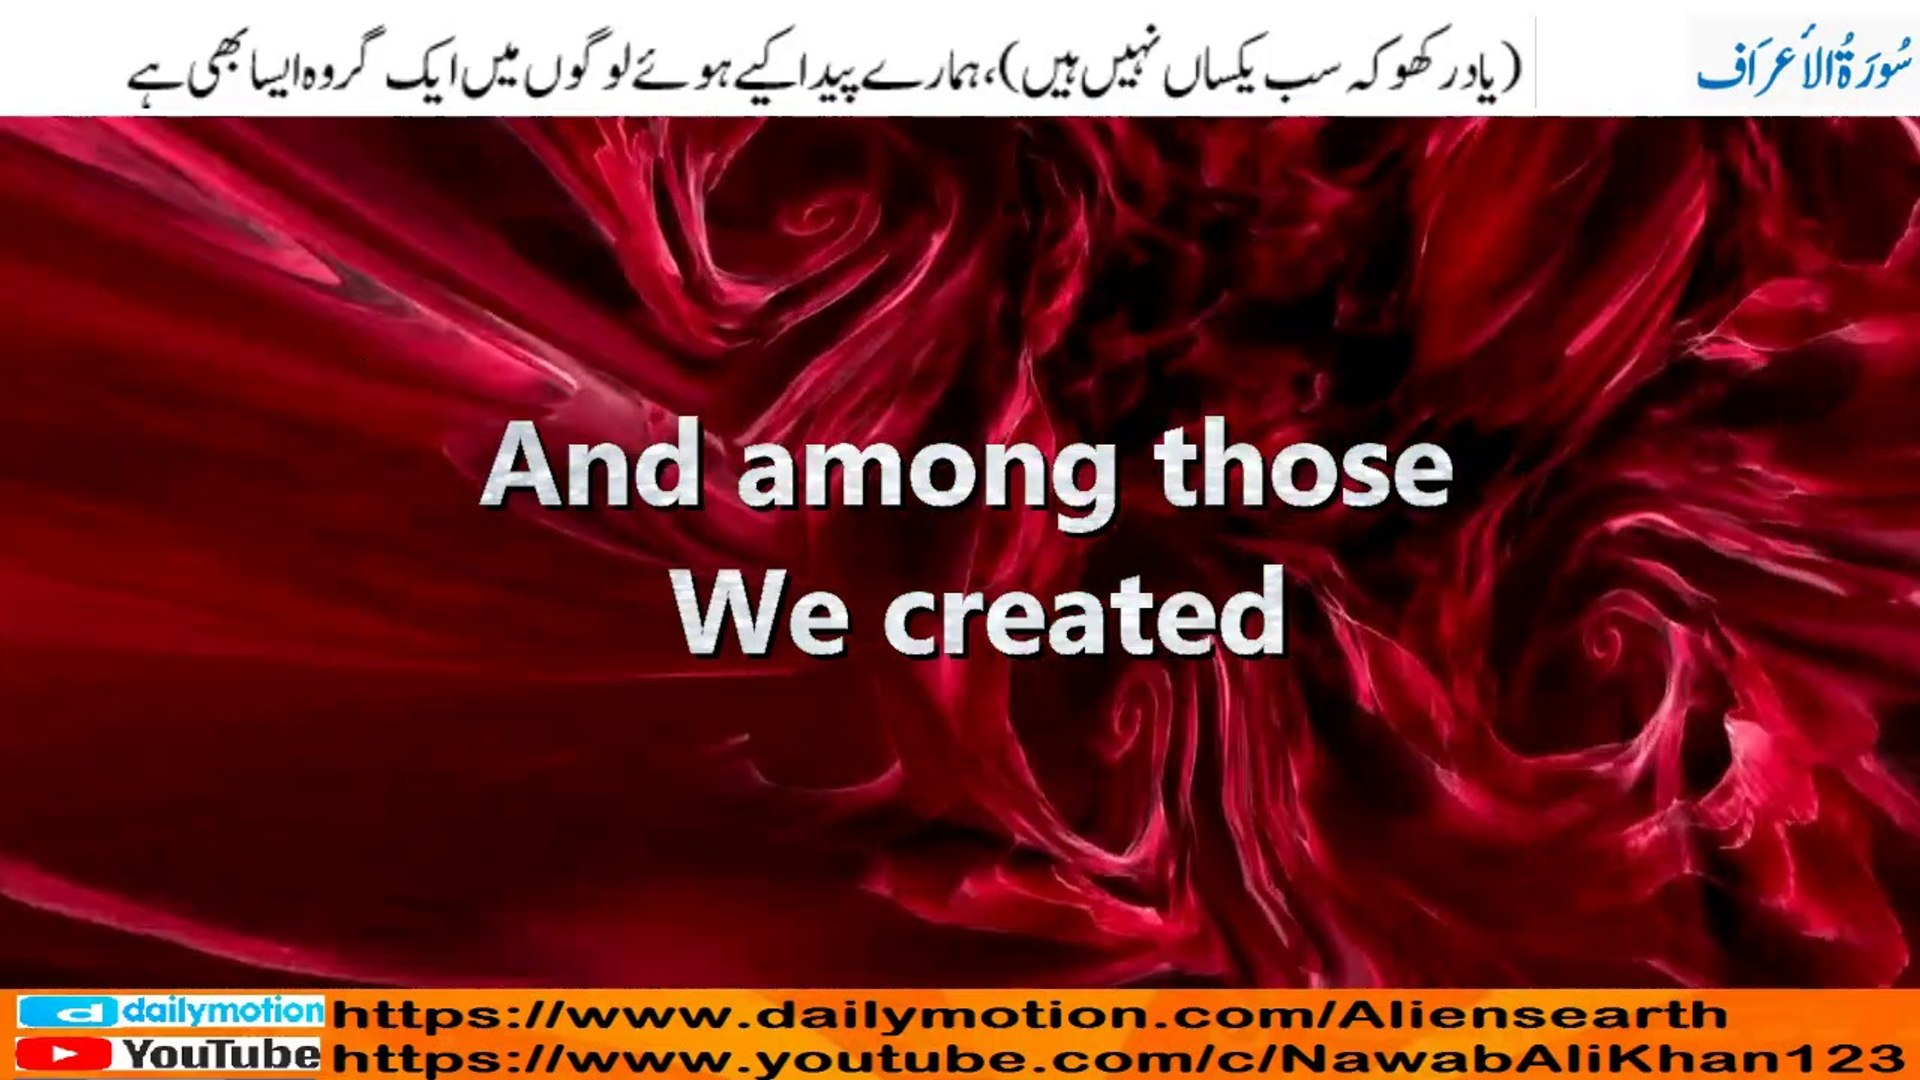 Quran Visualization Surah Al Araaf Chapter 7 verse 172 to 183 with English & Urdu Translation